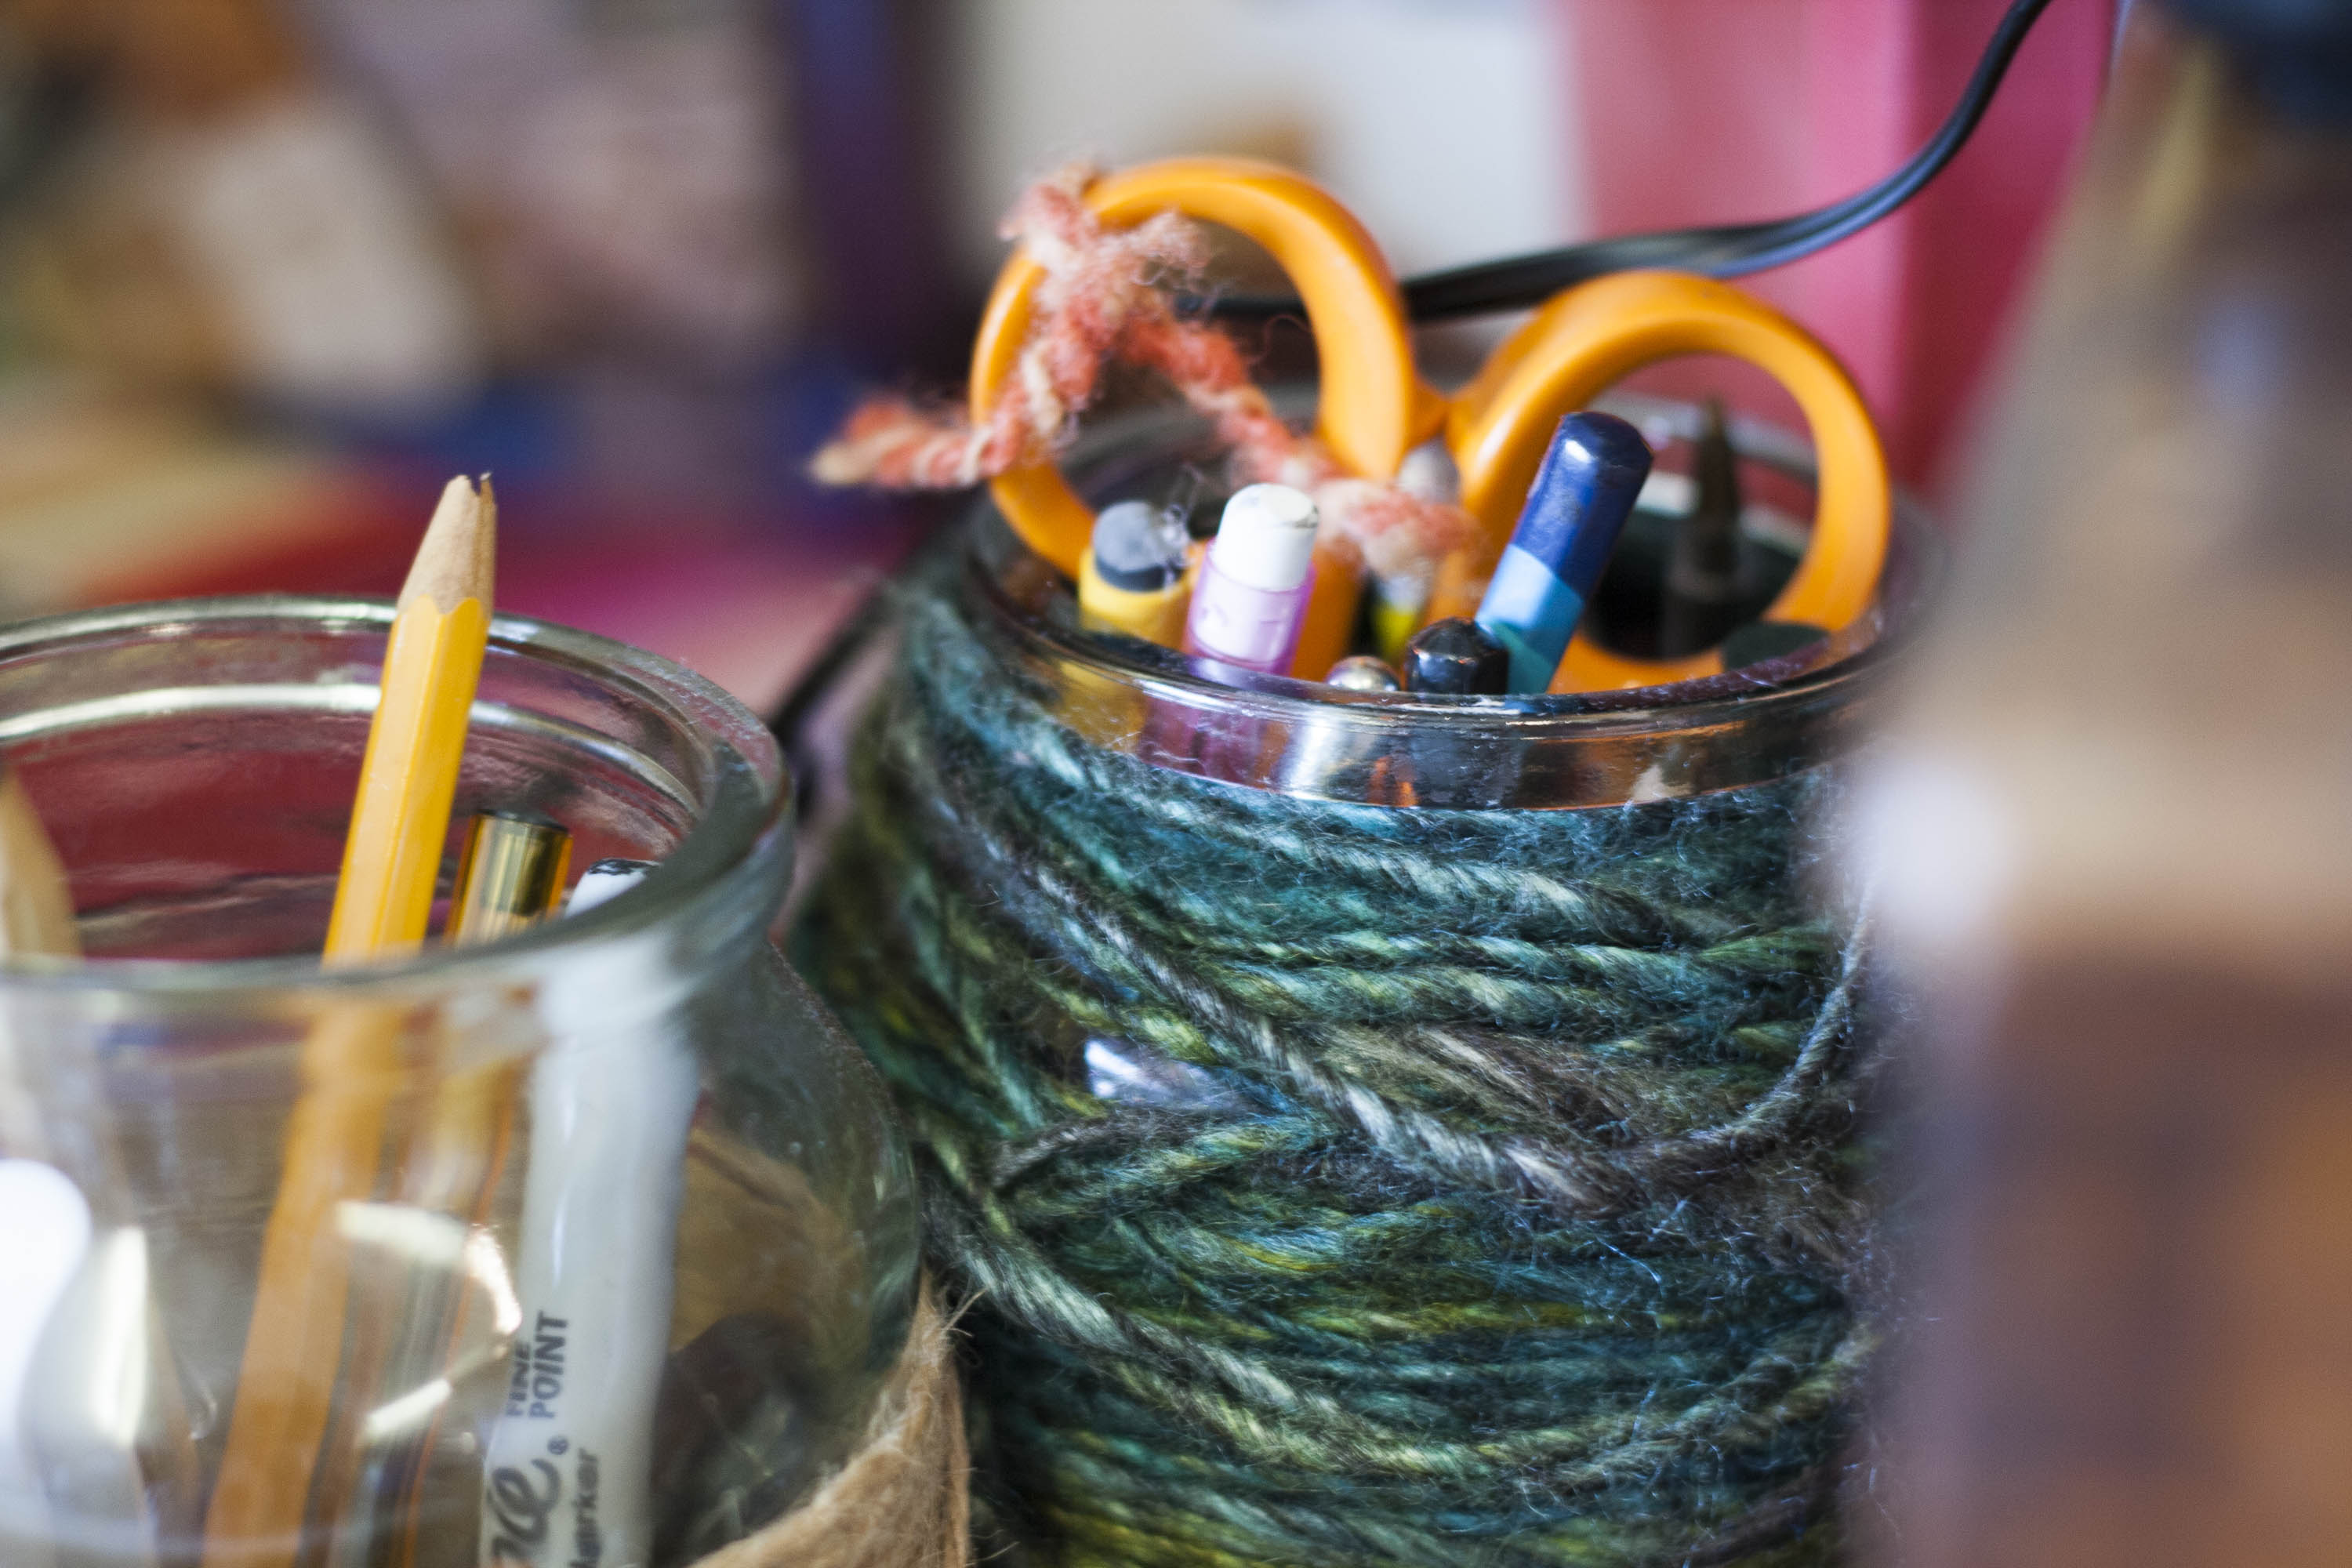 Two jam jars in the Nielanell studio, Hoswick, Shetland, with pencils, pens, scissors etc. One with teal and green handspun yarn wrapped around it